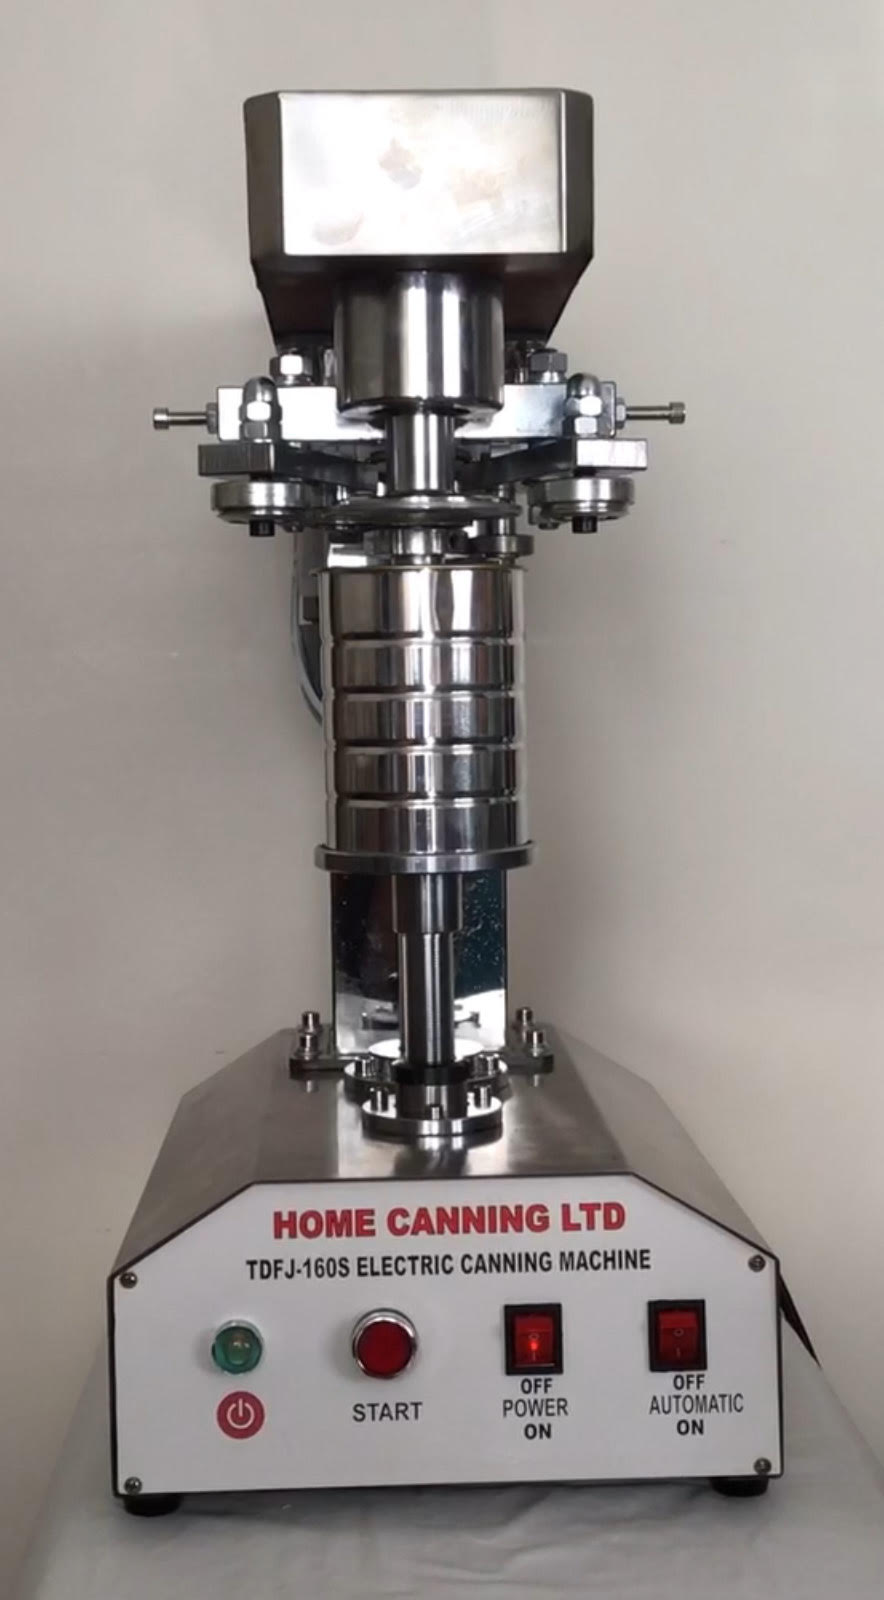 New 2019 Stainless Steel Semi-Automatic Home Canning Machine 99mm Diameter